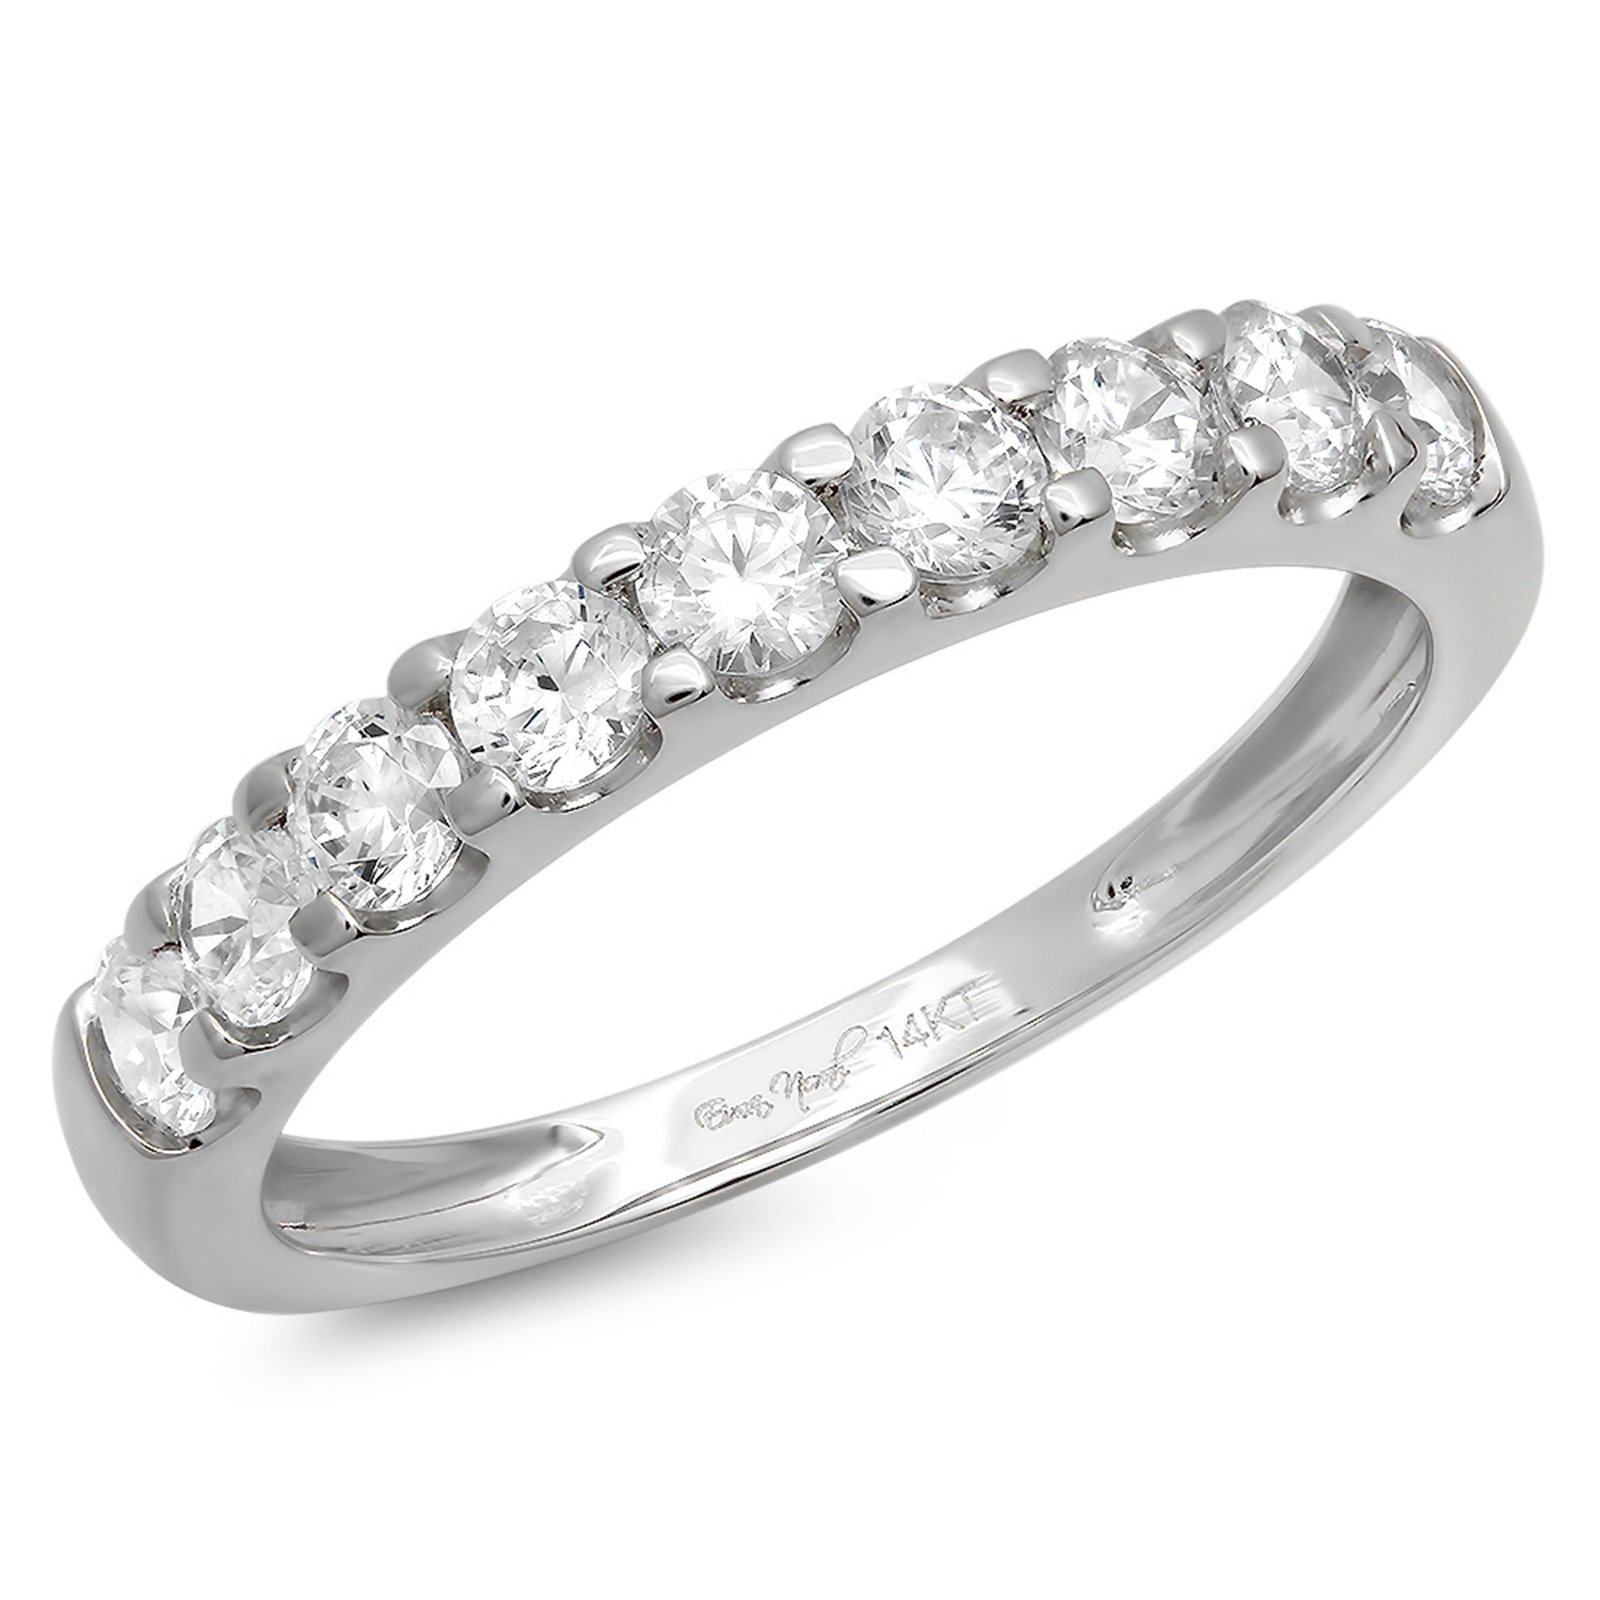 Clara Pucci 1.0 CT Round Cut CZ Designer Pave Bridal Engagement Wedding Ring Band 14K White Gold, Size 5.75 by Clara Pucci